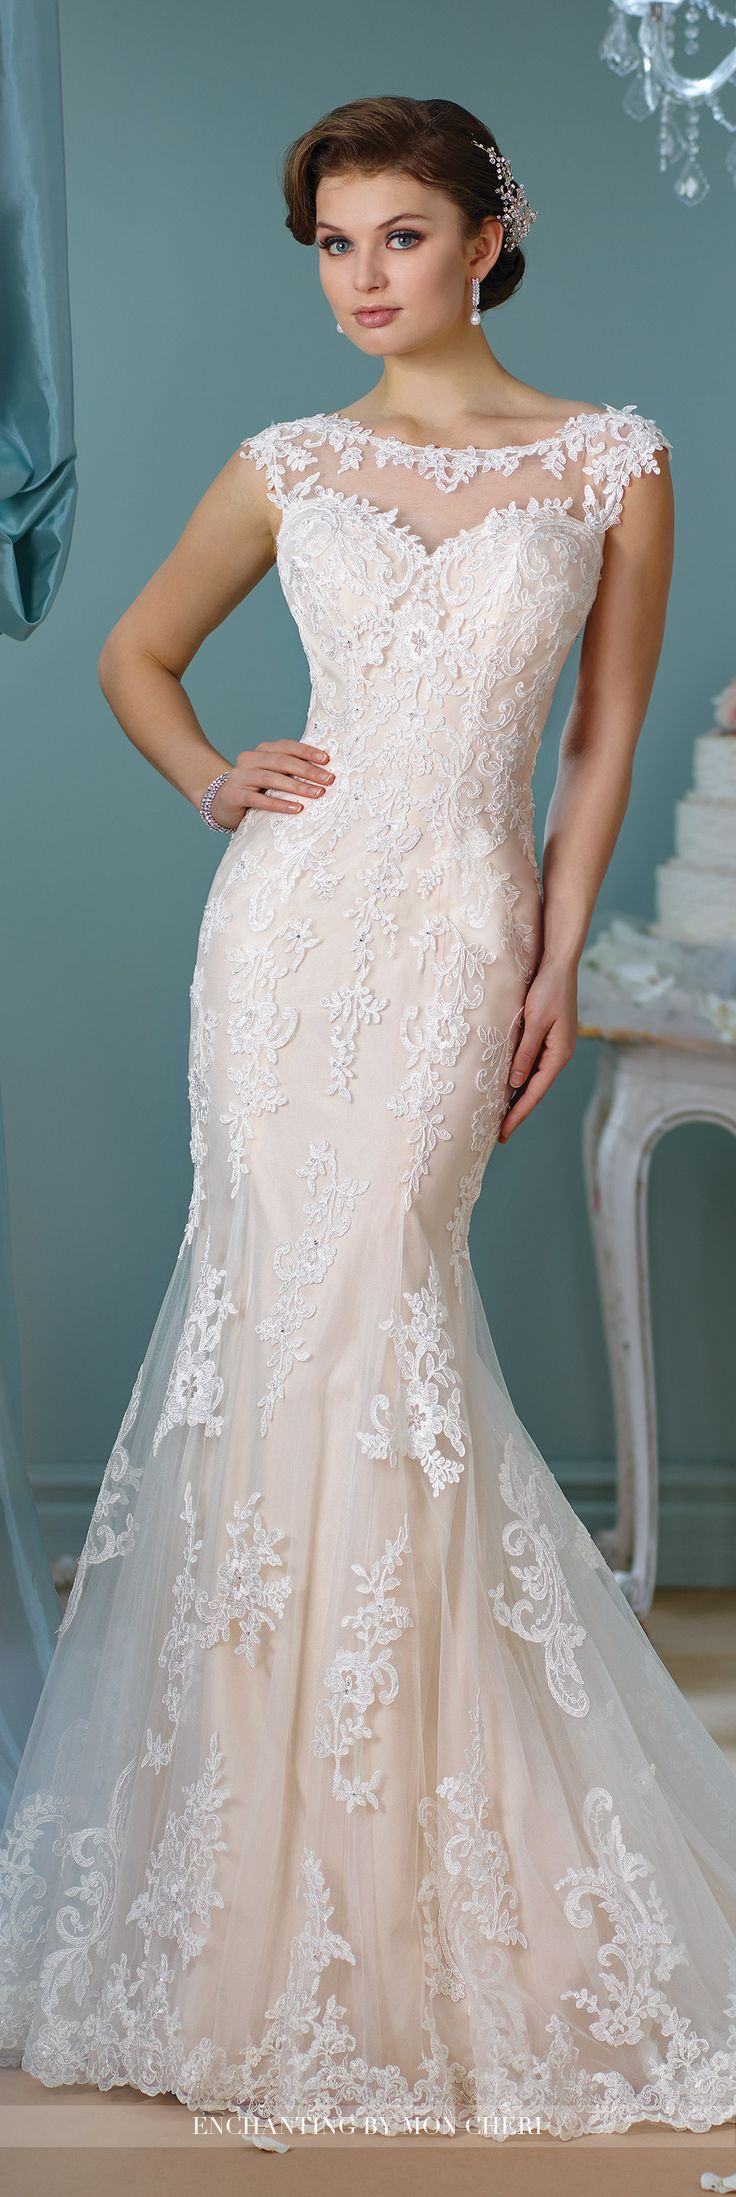 Best 25+ Fitted wedding gown ideas on Pinterest | Fitted wedding ...